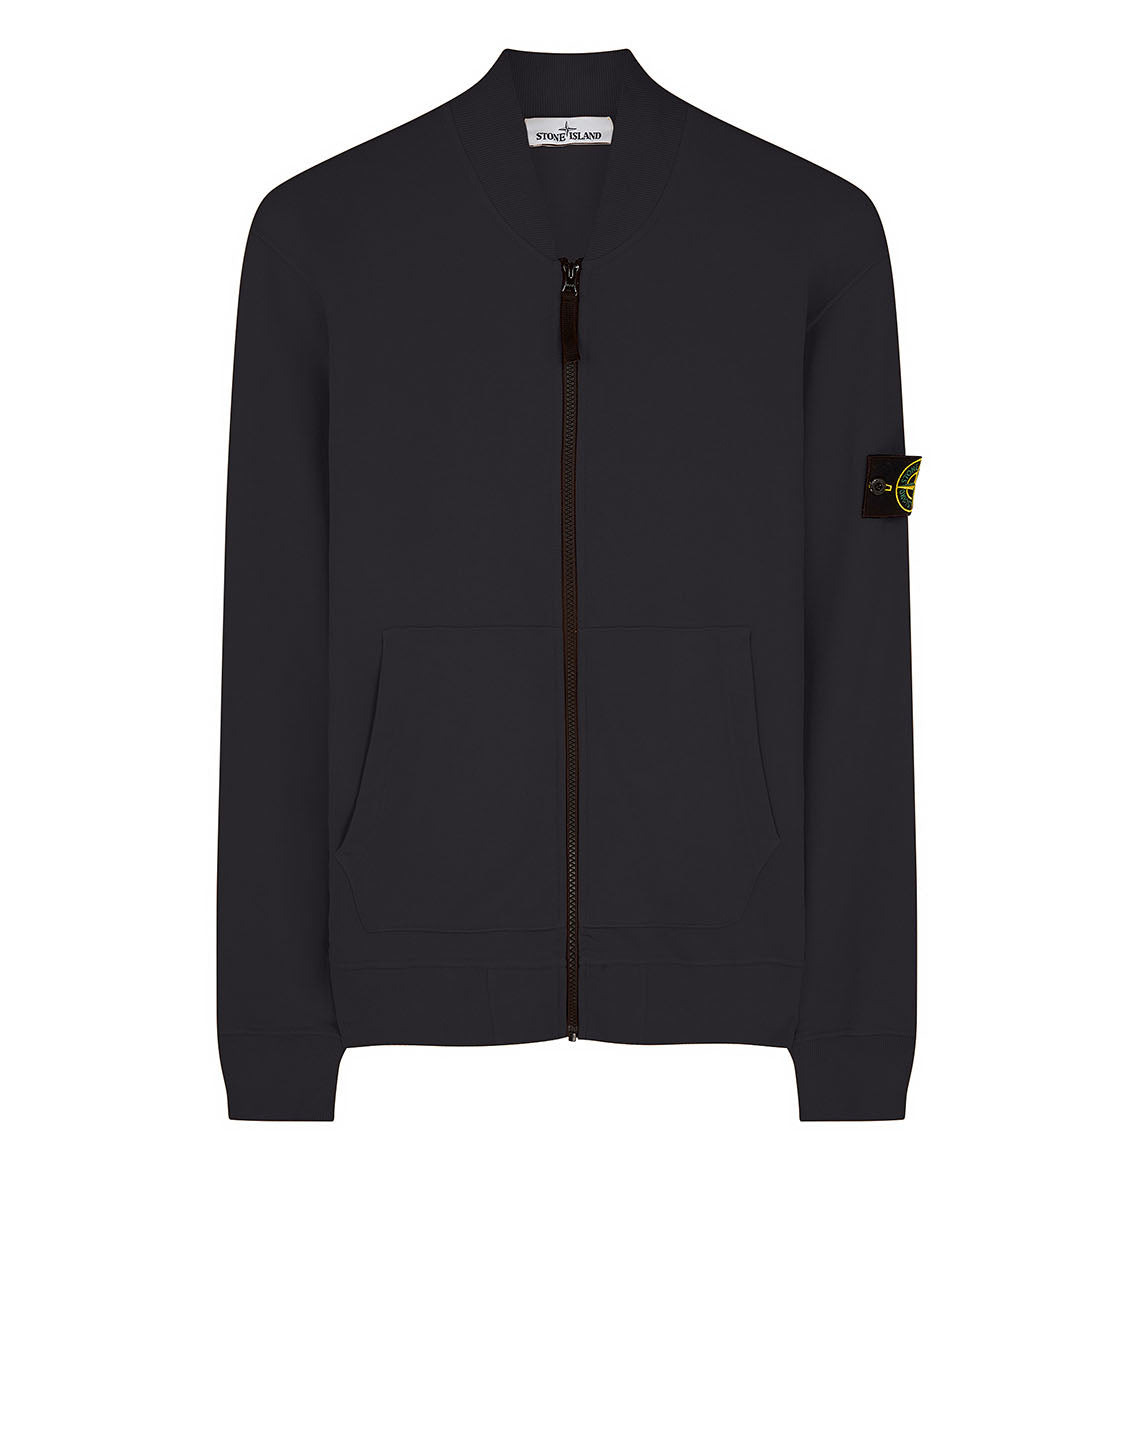 60220 Full zip Sweatshirt in Black